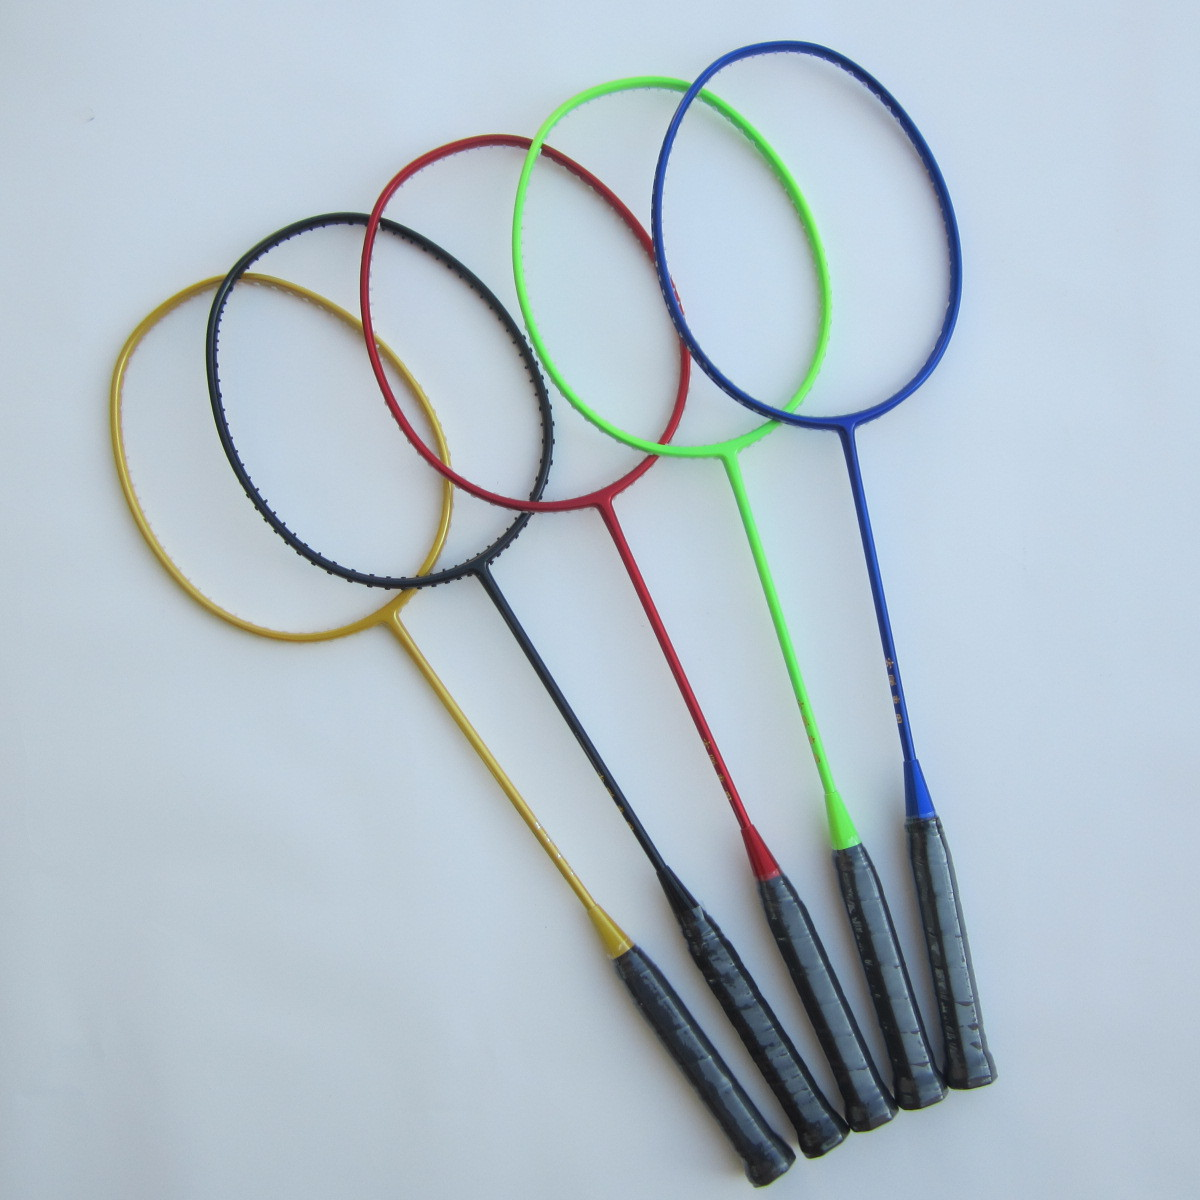 free shipping 2015 new sport high quality professiona raquete badminton racket victor Provincial special racket 9 color(China (Mainland))